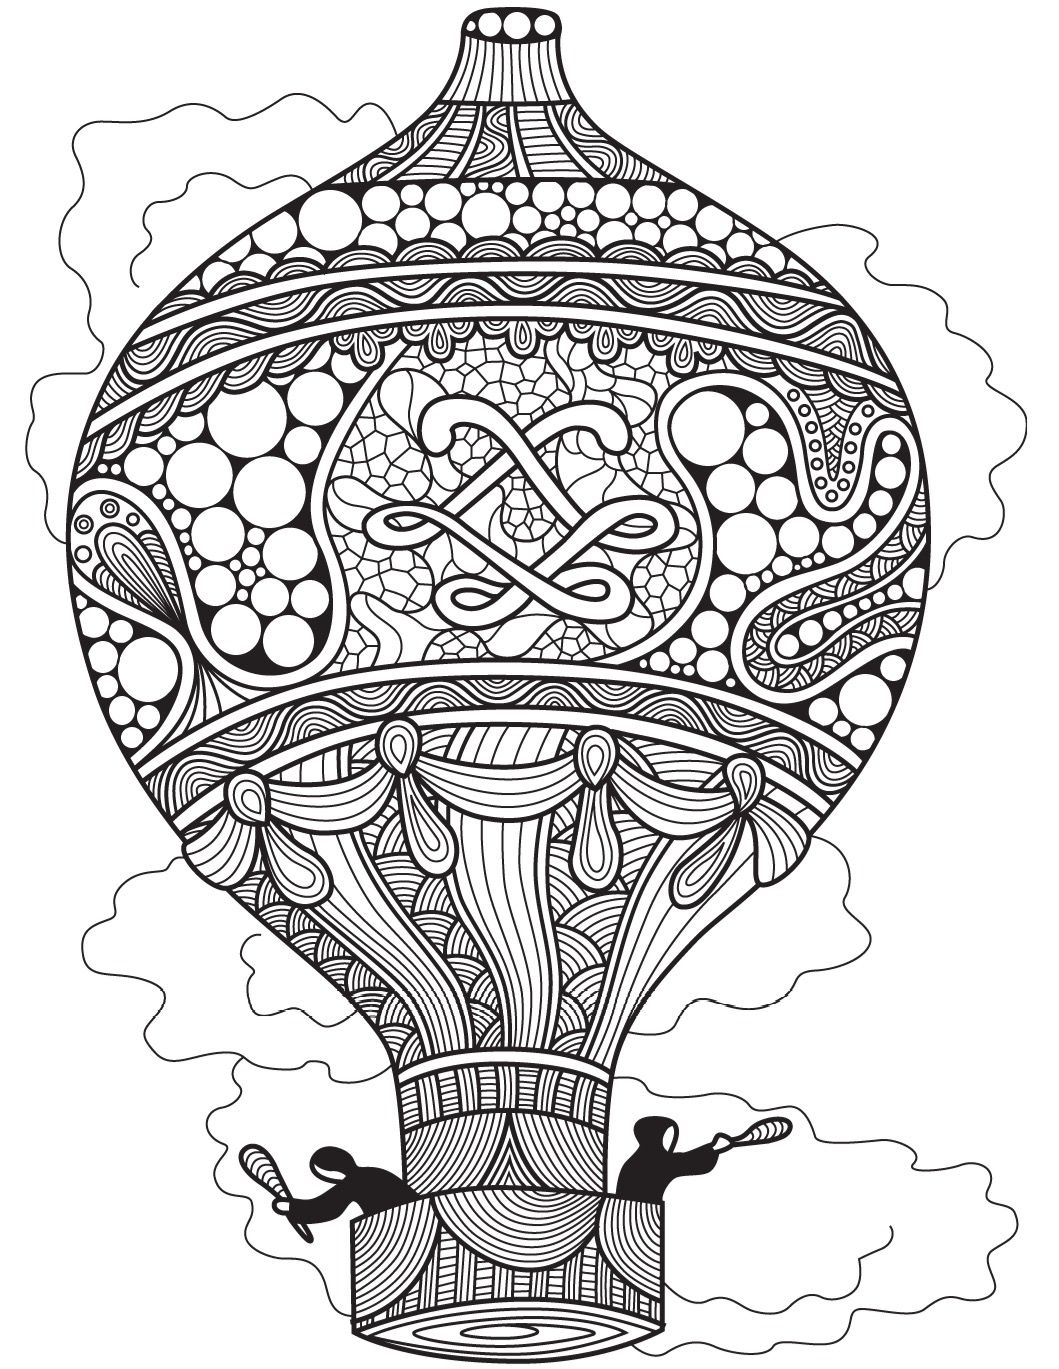 Hot air balloon | Colorish: coloring app for adults by GoodSoftTech ...